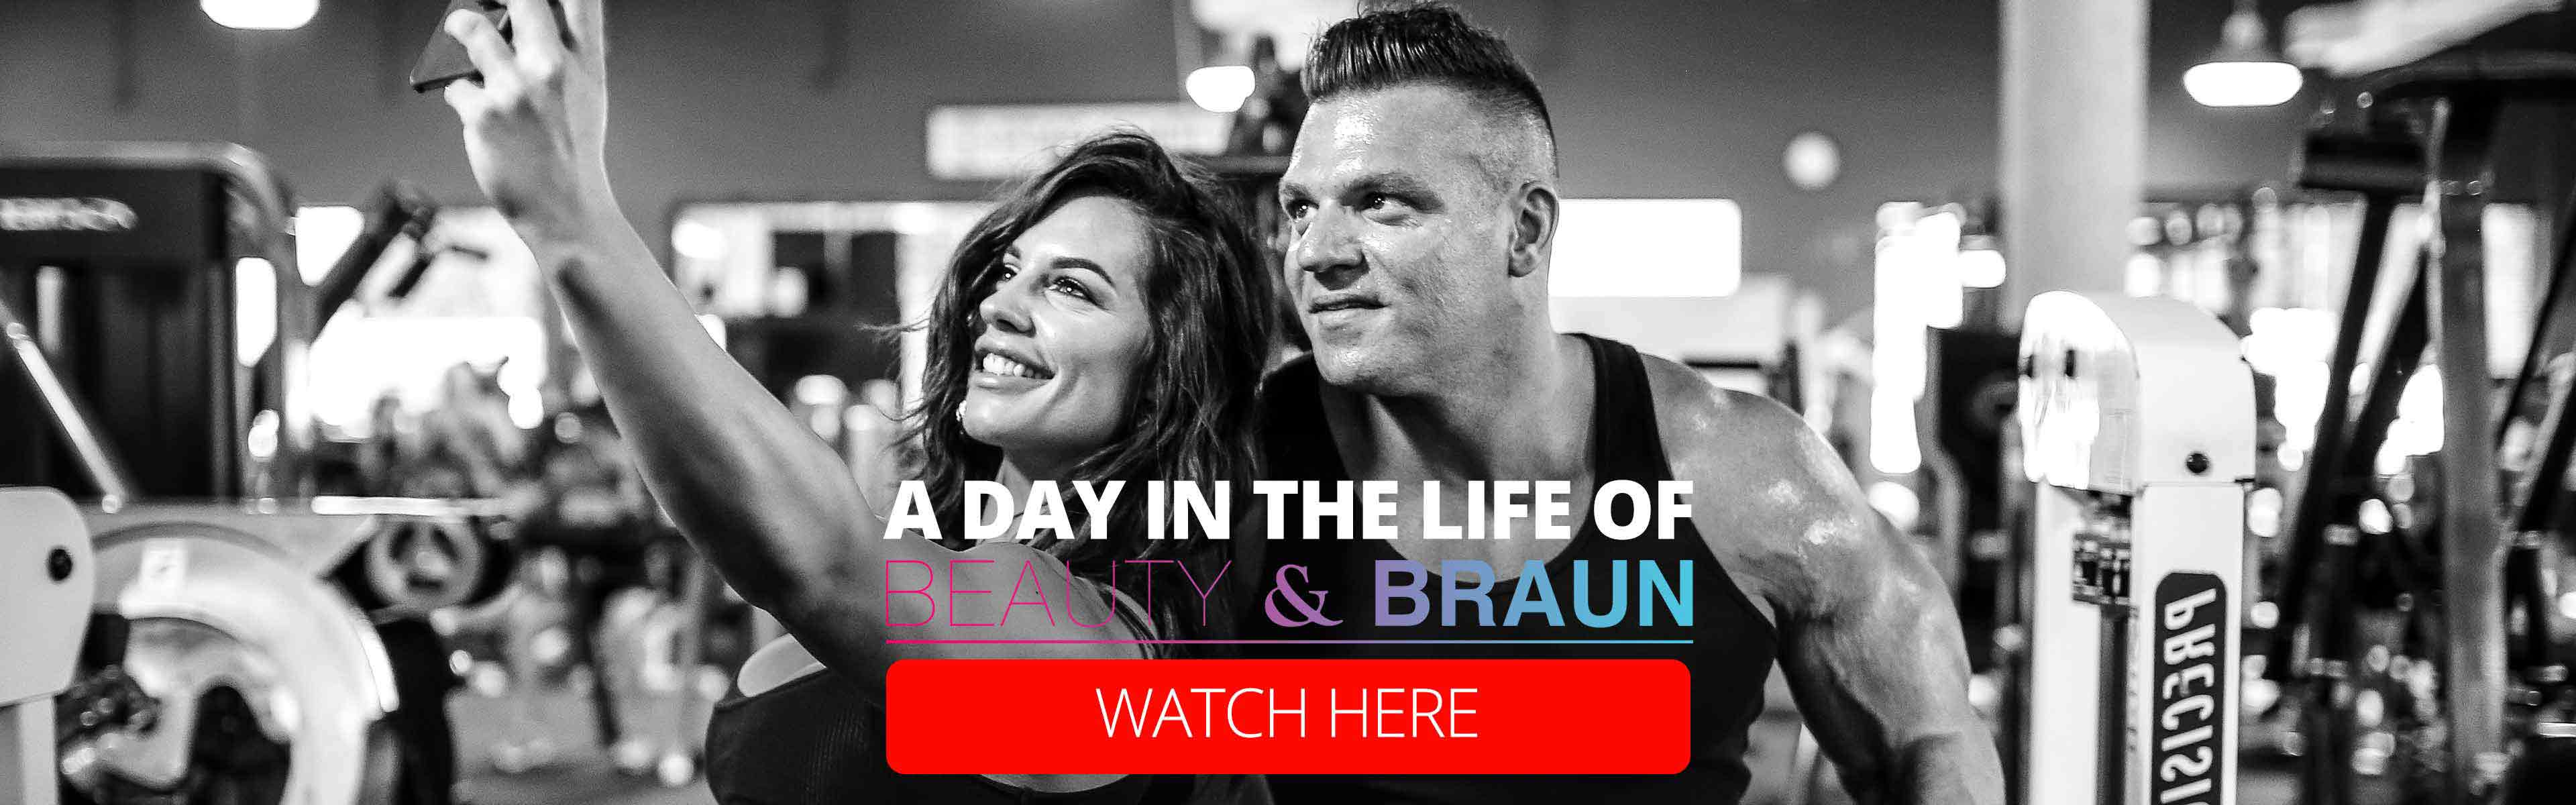 Beauty and Braun Watch Now